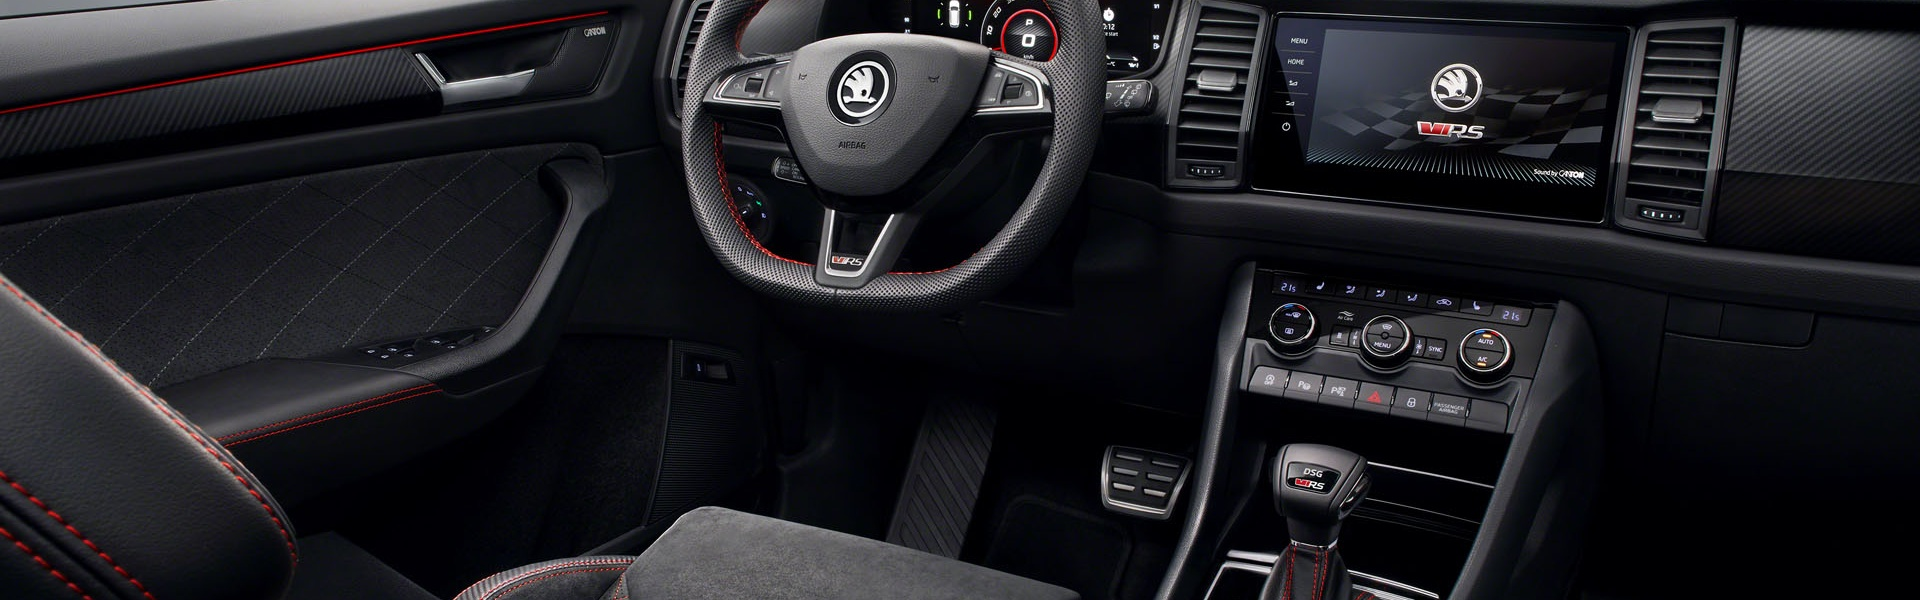 kodiaqrs_34interior-copy.jpg